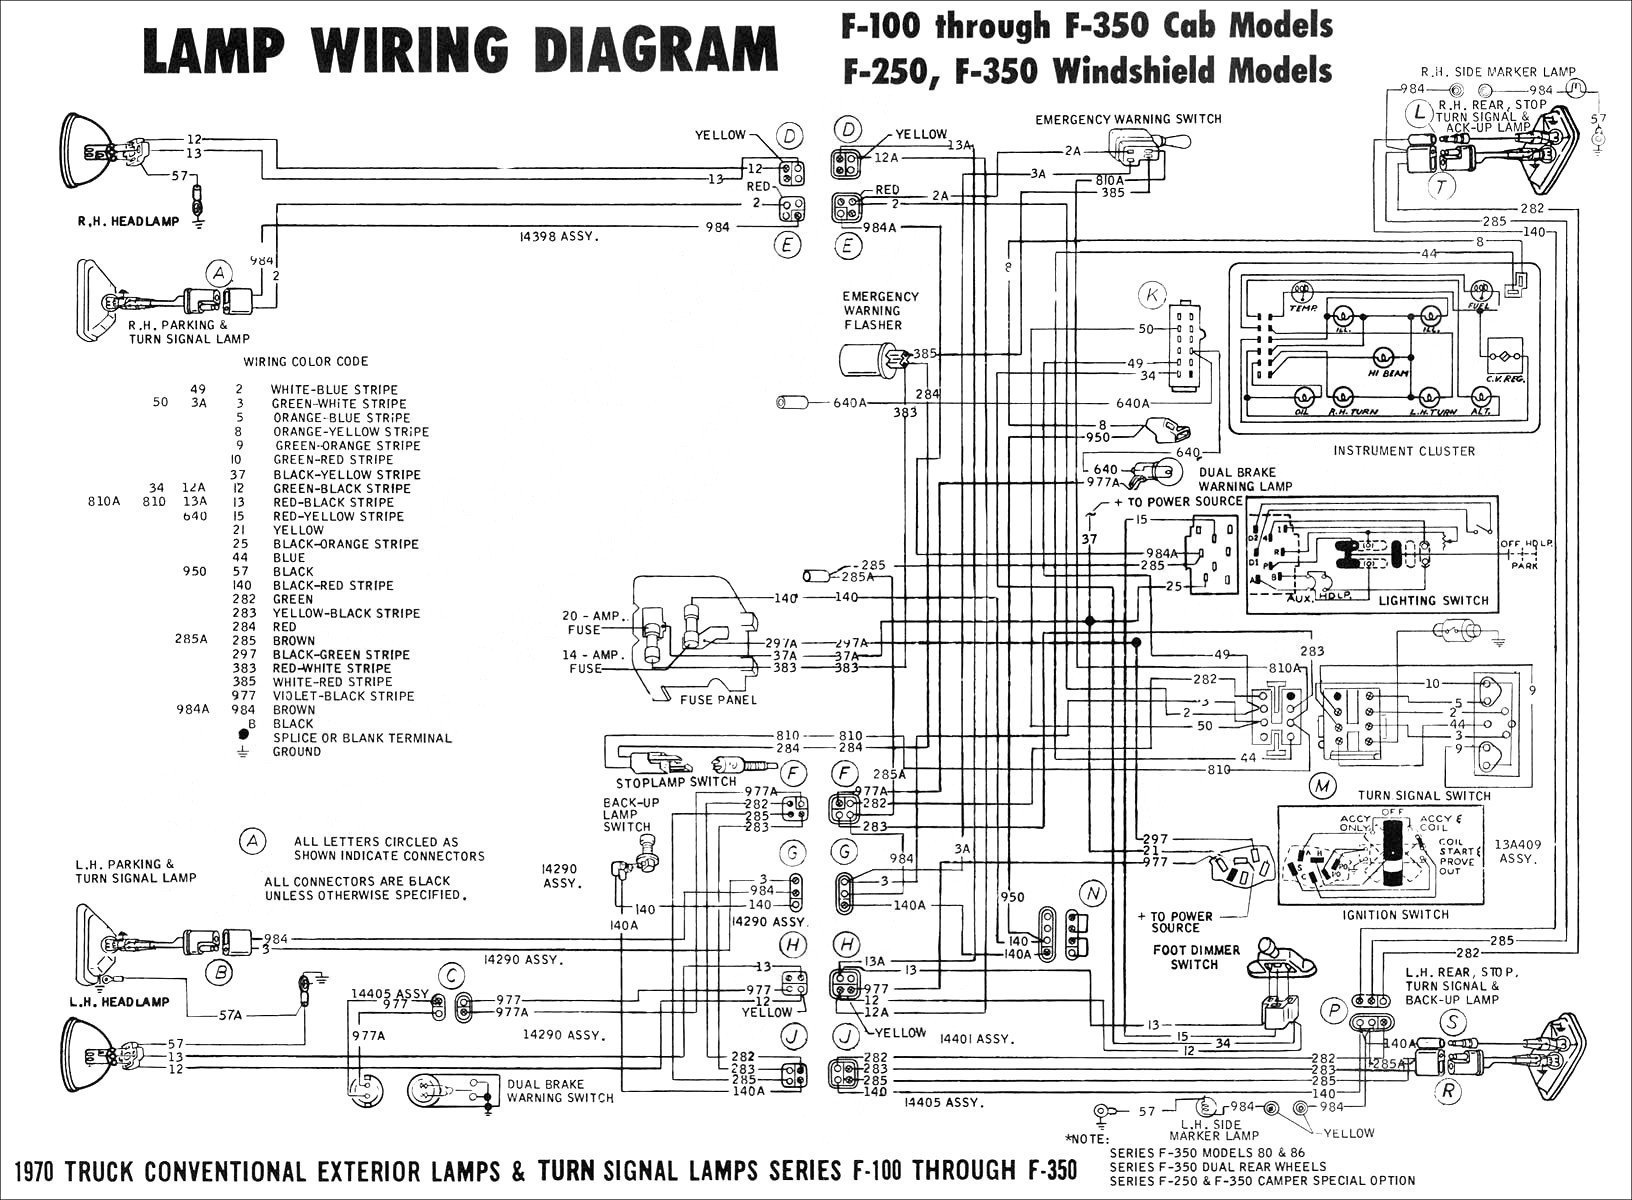 2006 volkswagen jetta stereo wiring diagram trane water source heat pump 2000 vw radio my